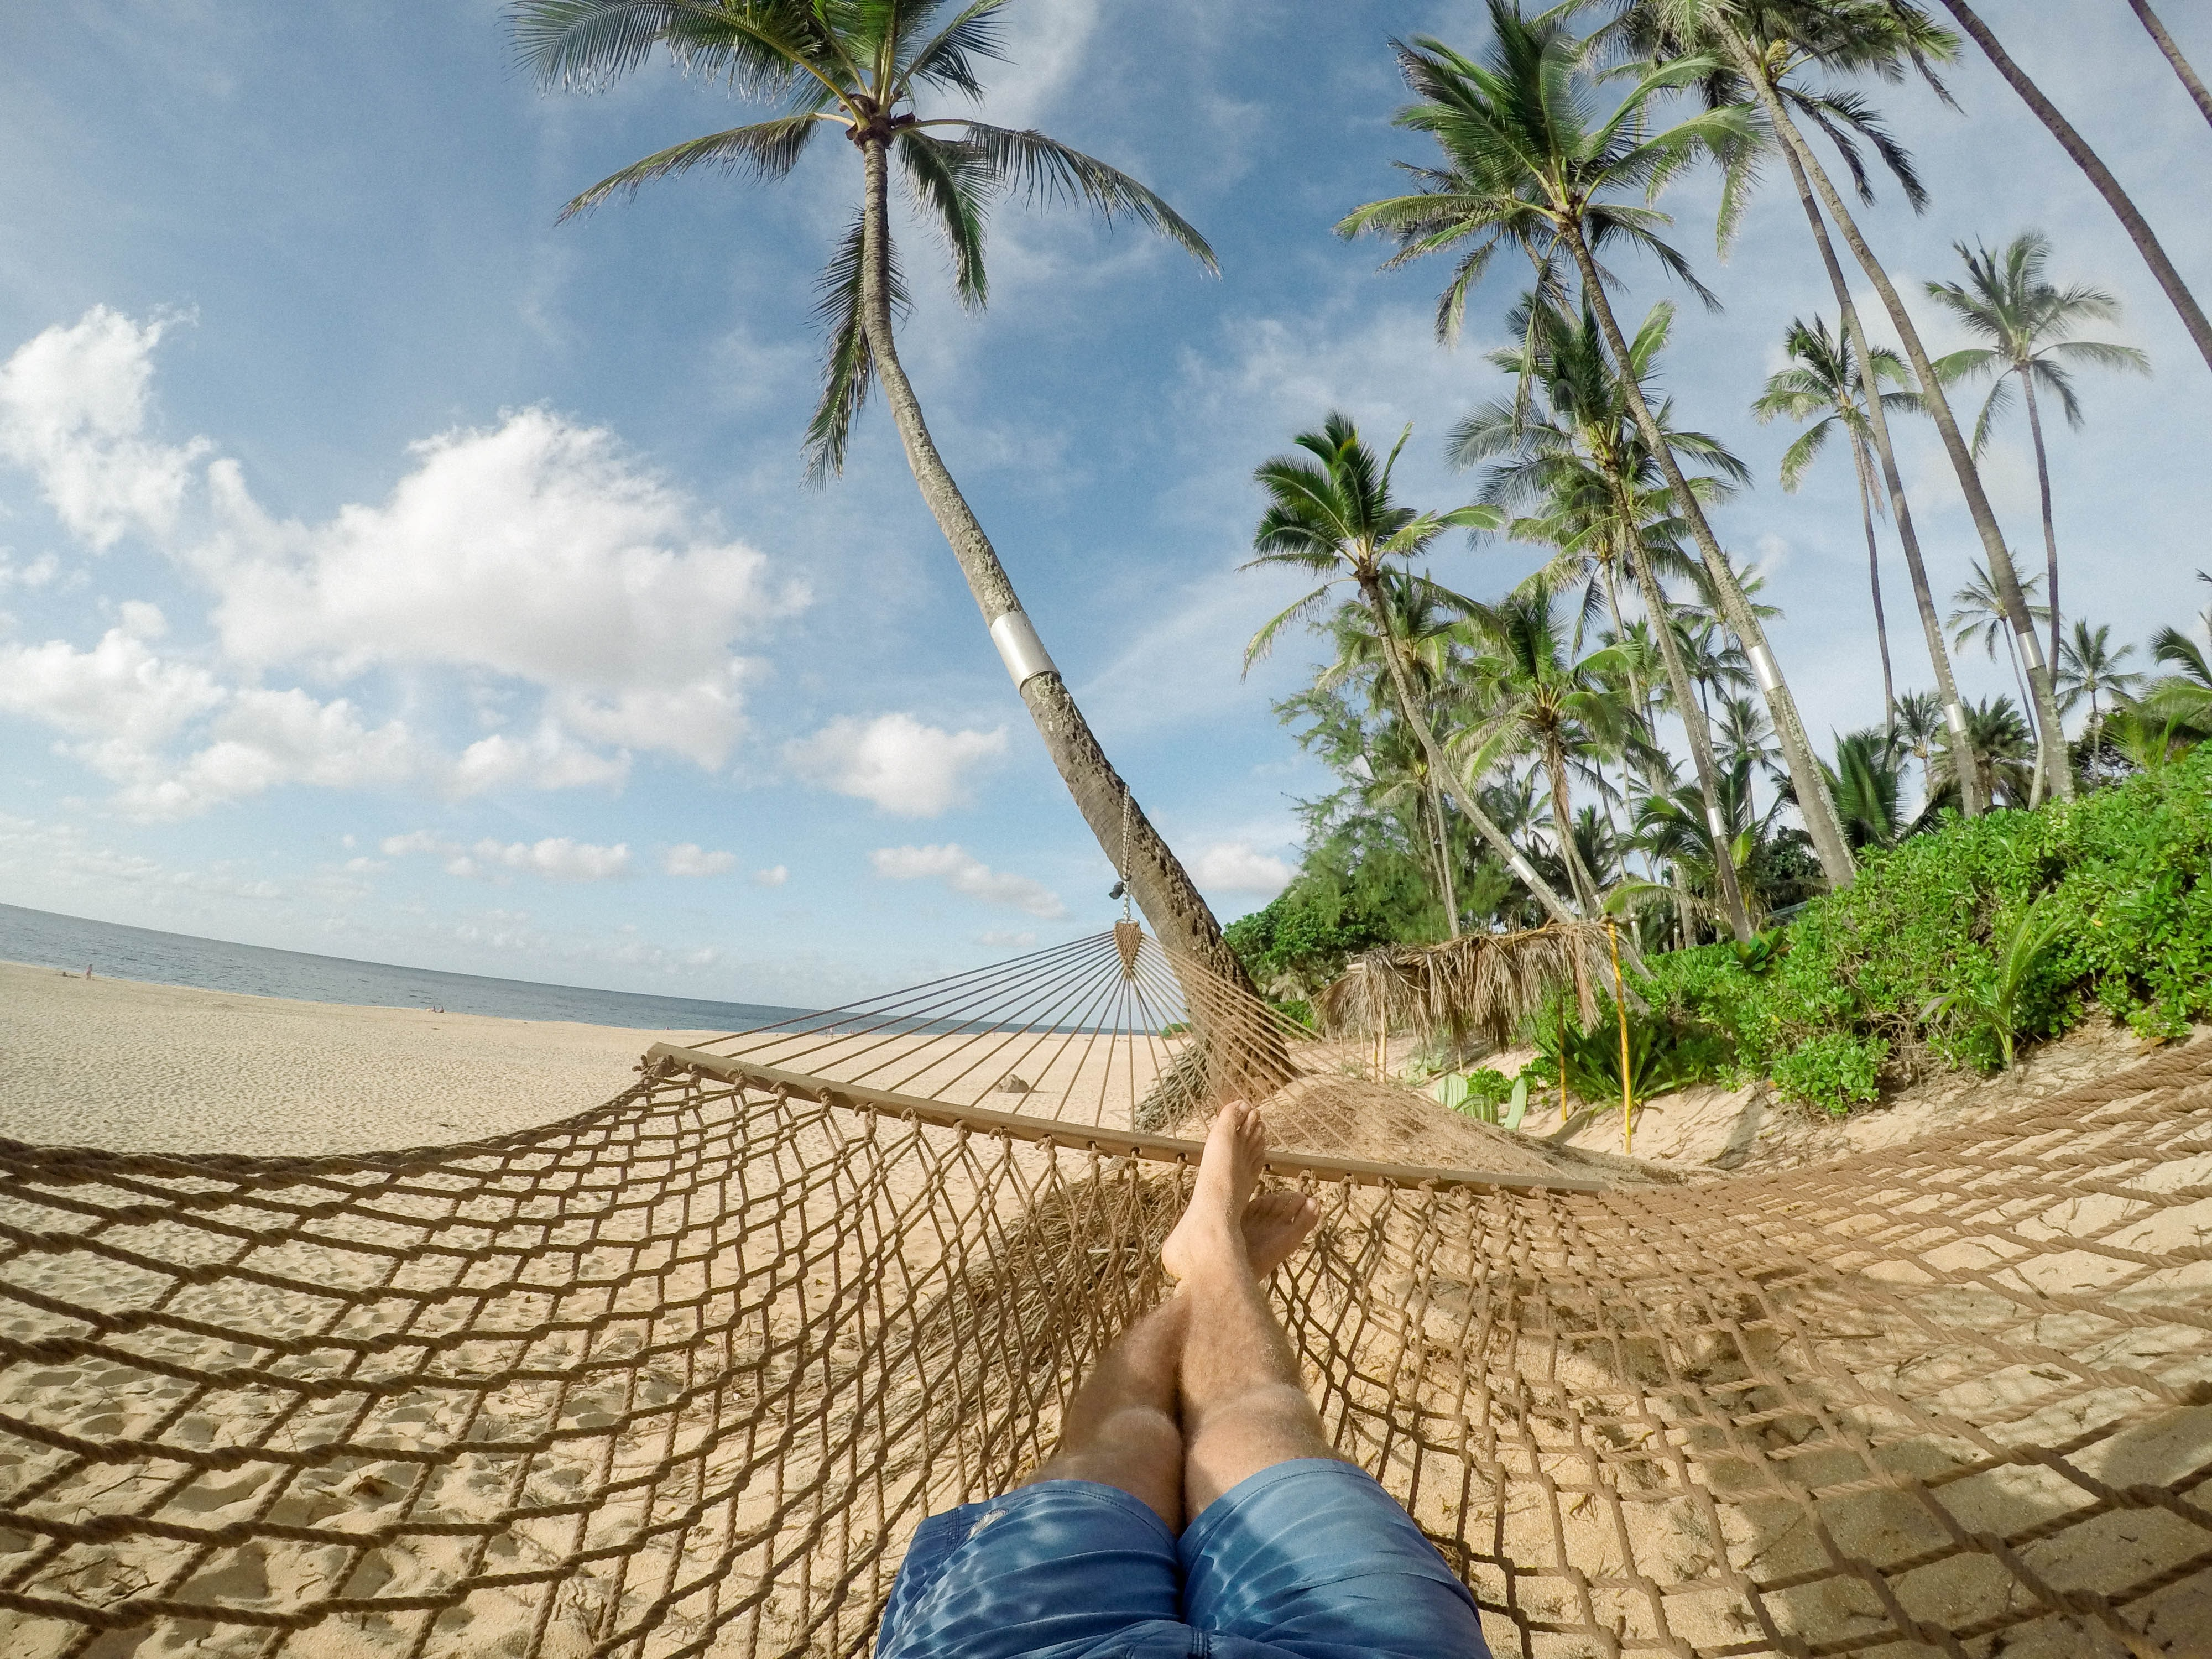 A person lying down in a hammock on the beach.